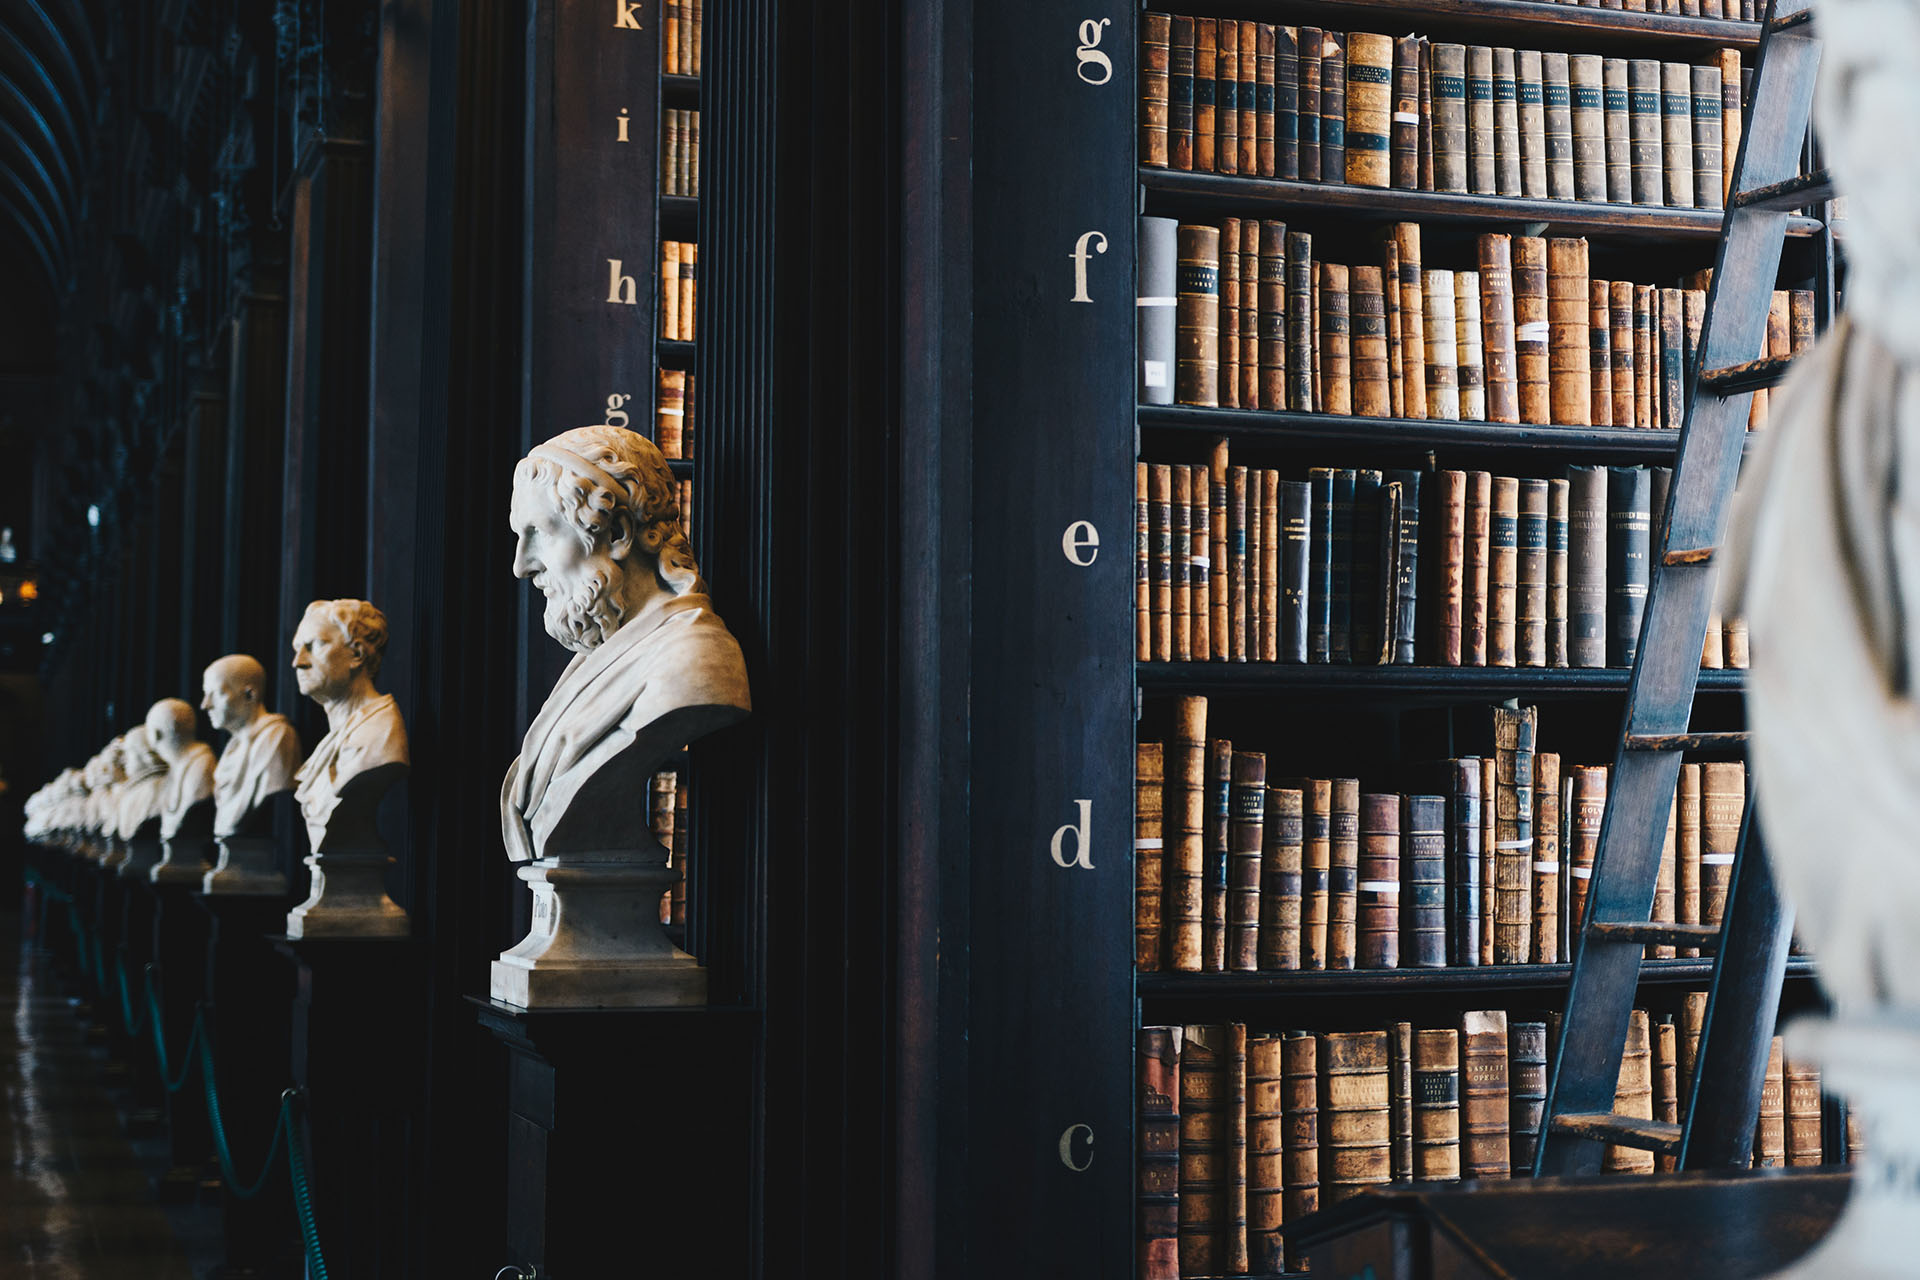 bookshelves in library with statues